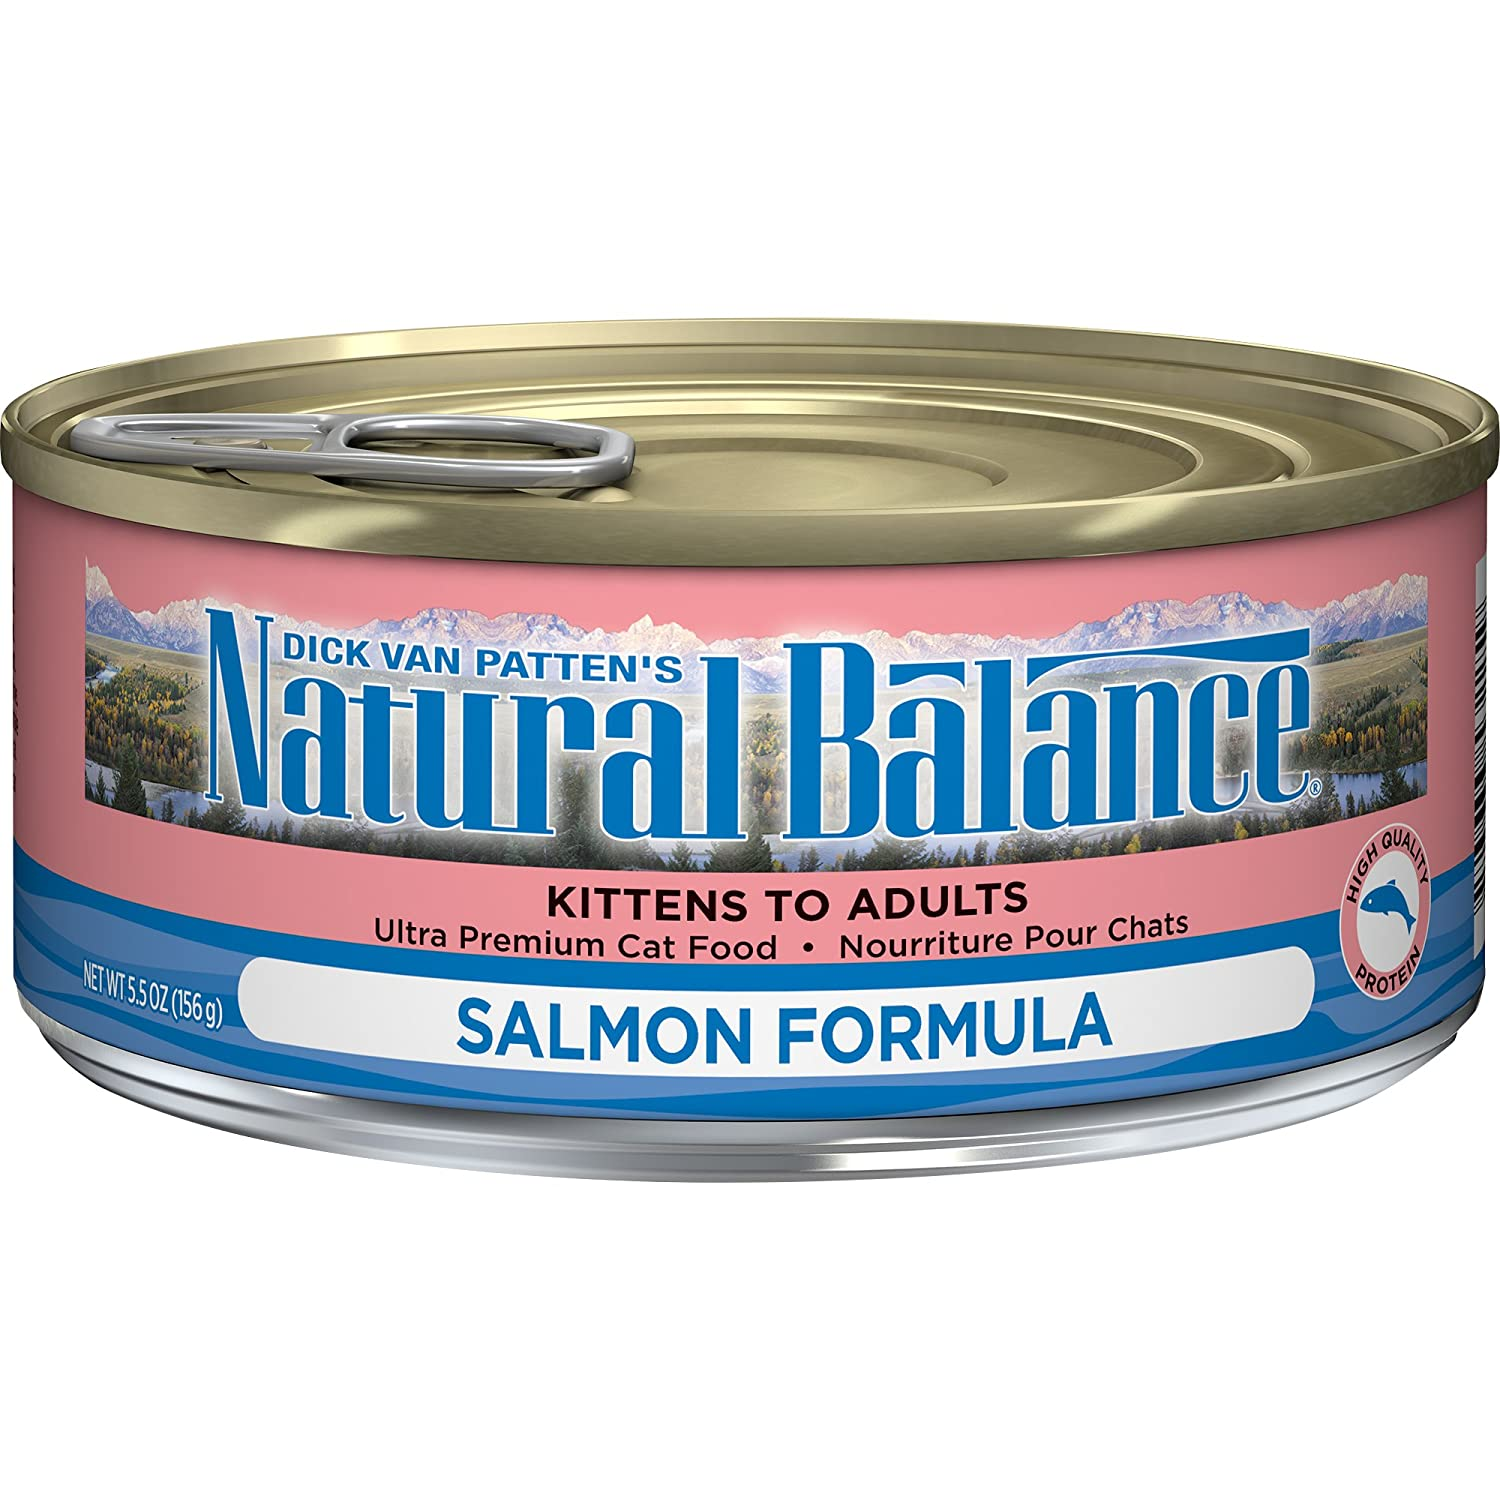 Natural Balance Salmon Formula Wet Cat Food 5.5-Ounce Can (Pack of 24)